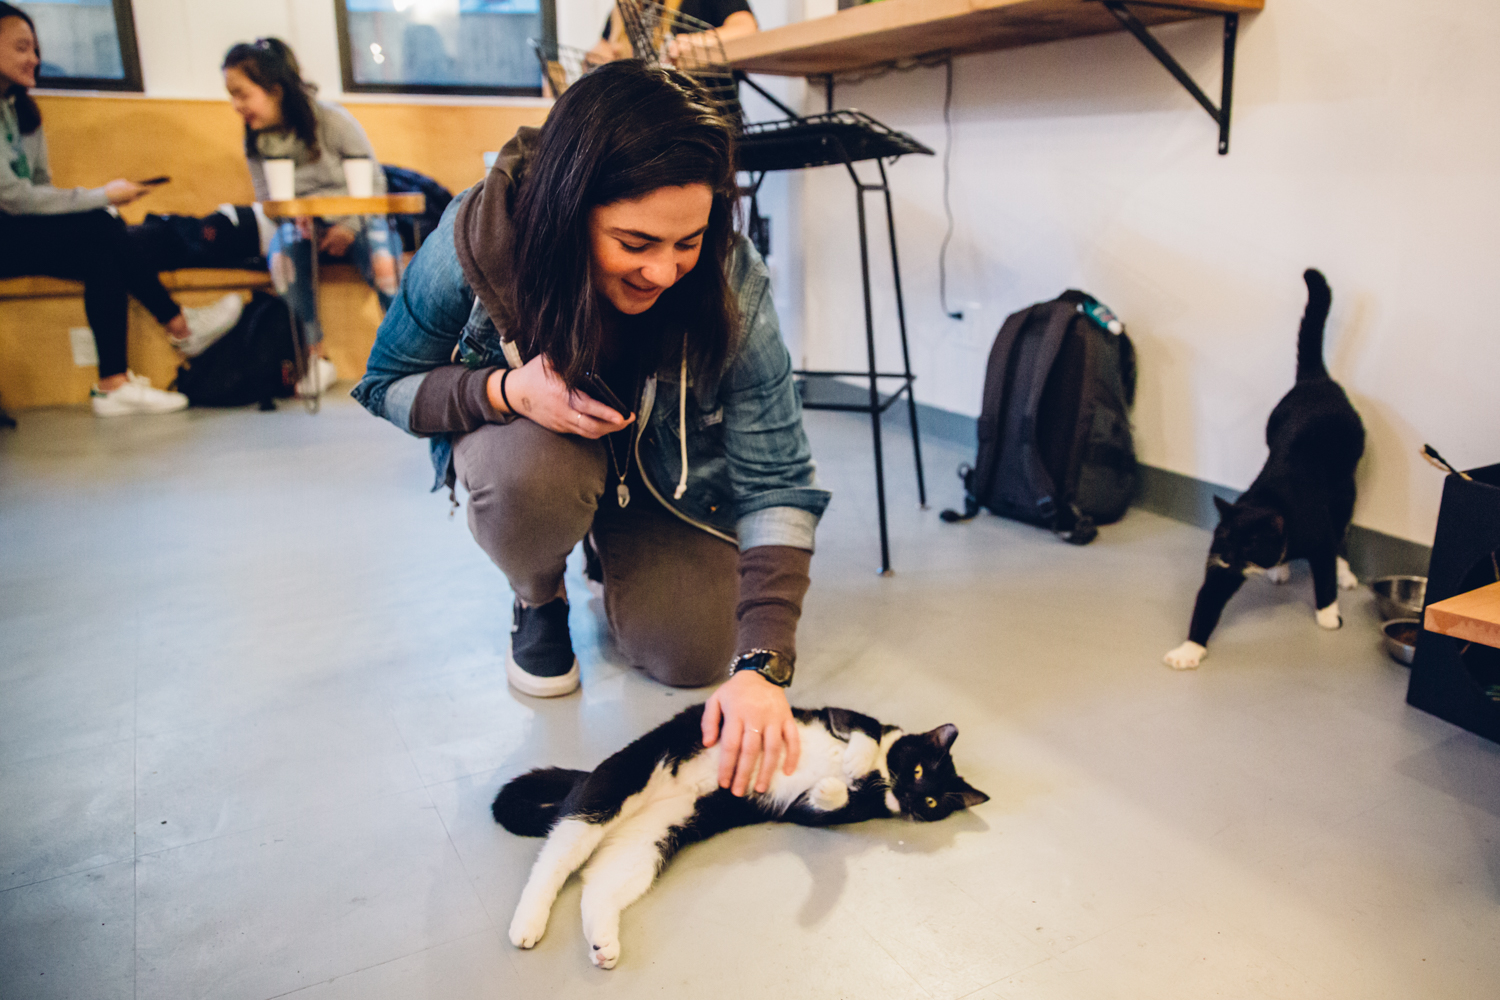 We first heard about NEKO Cat Cafe back in January of 2016 when they announced their interest in opening a shop on Capitol Hill. Now almost two years later, multiple fundraisers, and a lot of work - NEKO is open for business at 519 E. Pine St. They have coffee, beer, wine & light nibbles - all in the company of CATS! NEKO and RASKC have partnered to make sure all cats you interact with are adoptable. Important Note: You *do* have to make a reservation, can't just drop by. More info at nekoseattle.com! (Image: Sunita Martini / Seattle Refined)